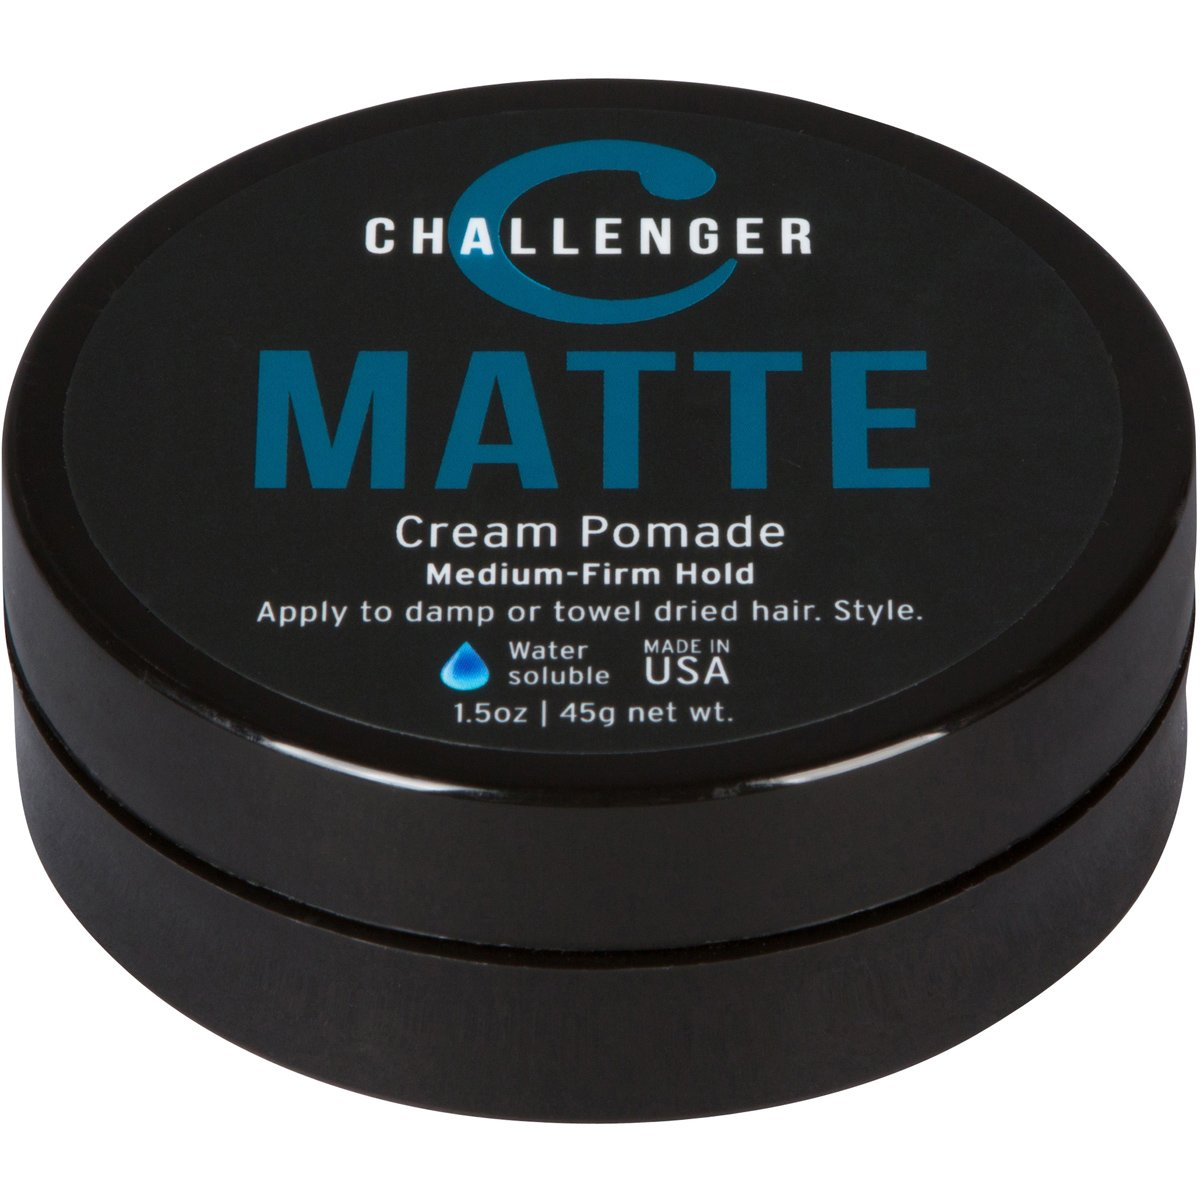 Matte Cream Pomade - Challenger 1.5oz Medium Firm Hold - Water Based, Clean & Subtle Scent. Best Hair Styling Cream, Wax, Fiber, Clay, Paste All In One by Challenger